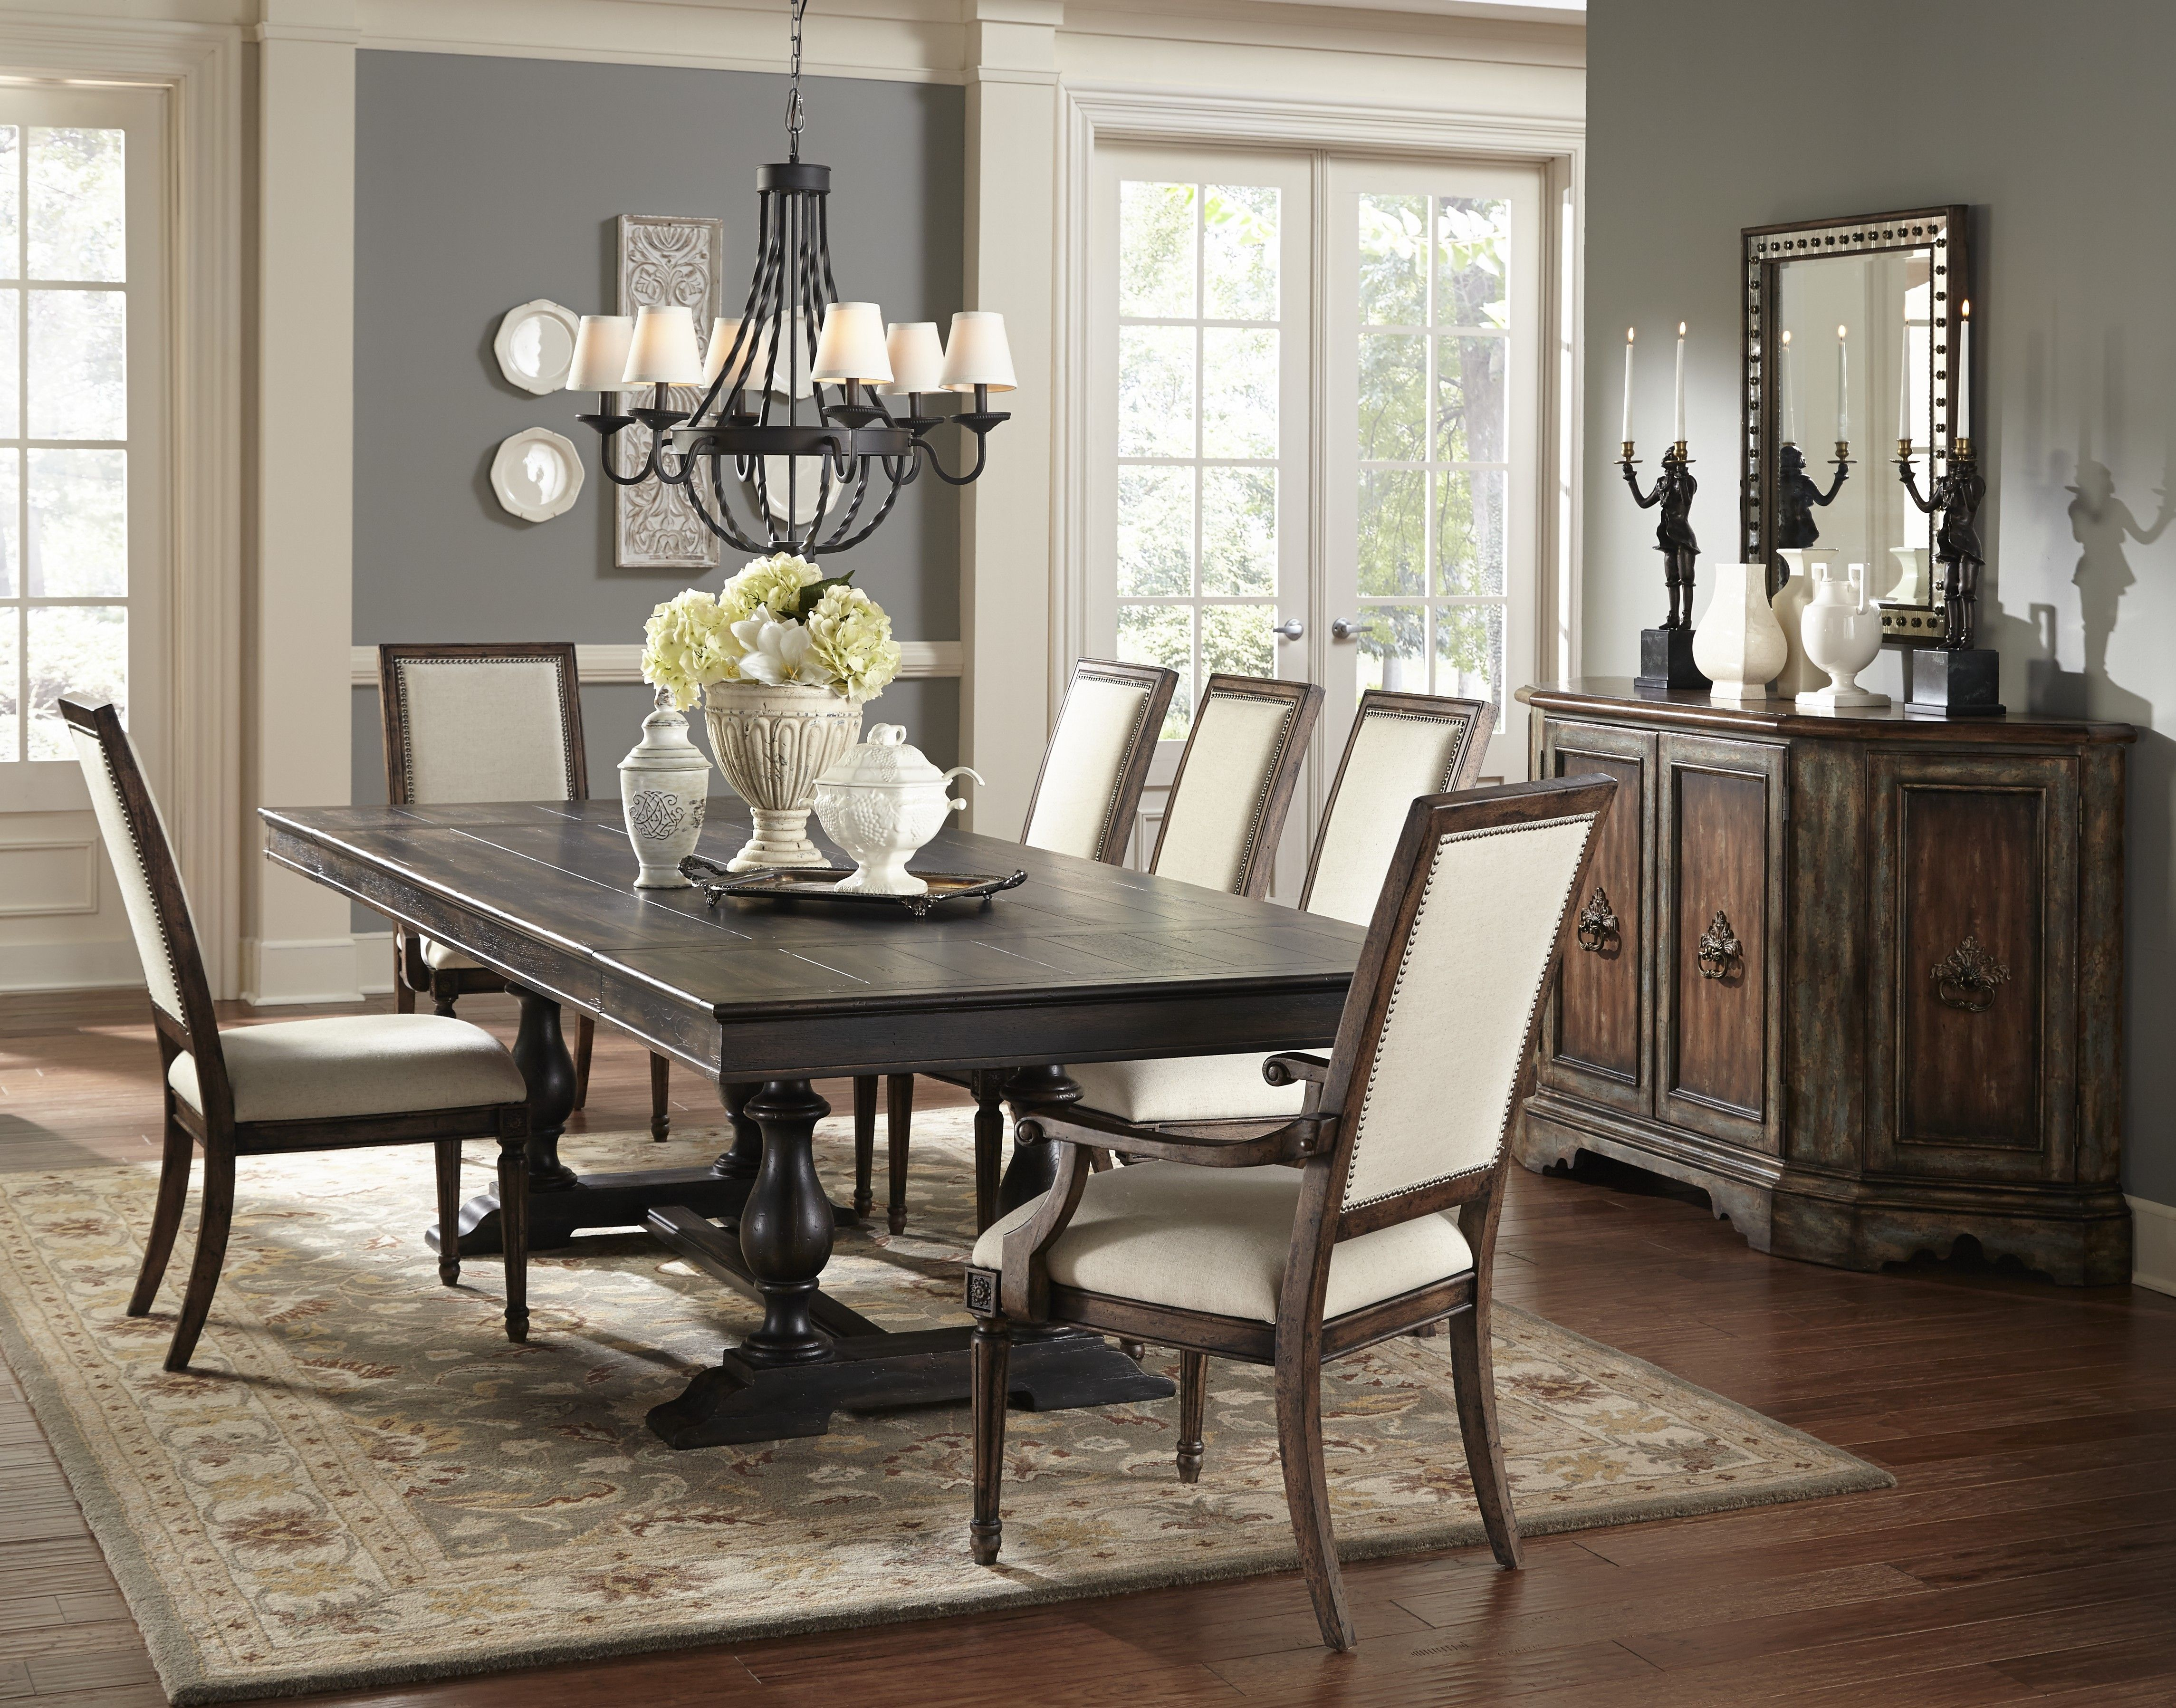 Long Rectangle Dining Table From Accentrics Home By Pulaski